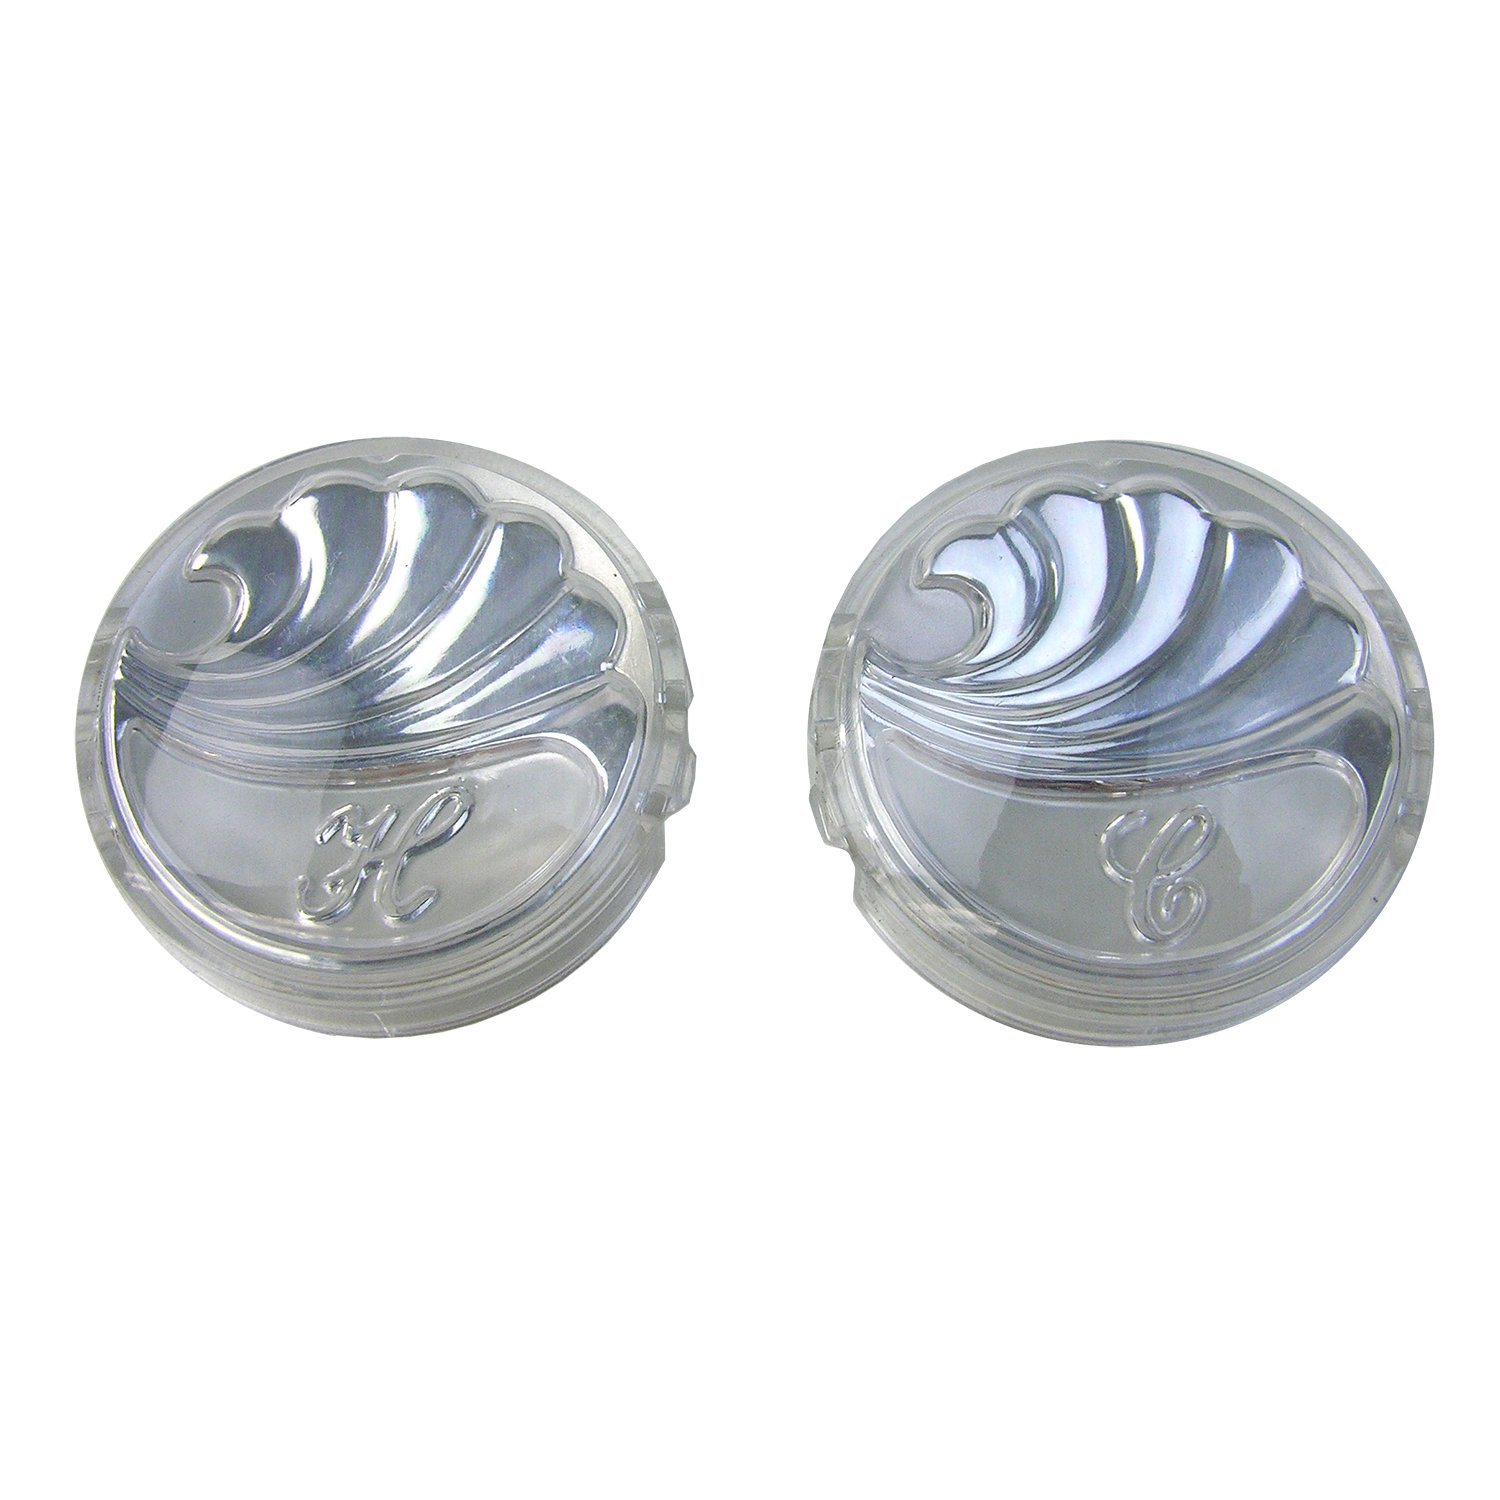 LASCO 0-6071 Hot/Cold Faucet Handle Index Buttons for Delta New Style Widespread Lavatory OEM 17965 Model, Silvertone Acrylic